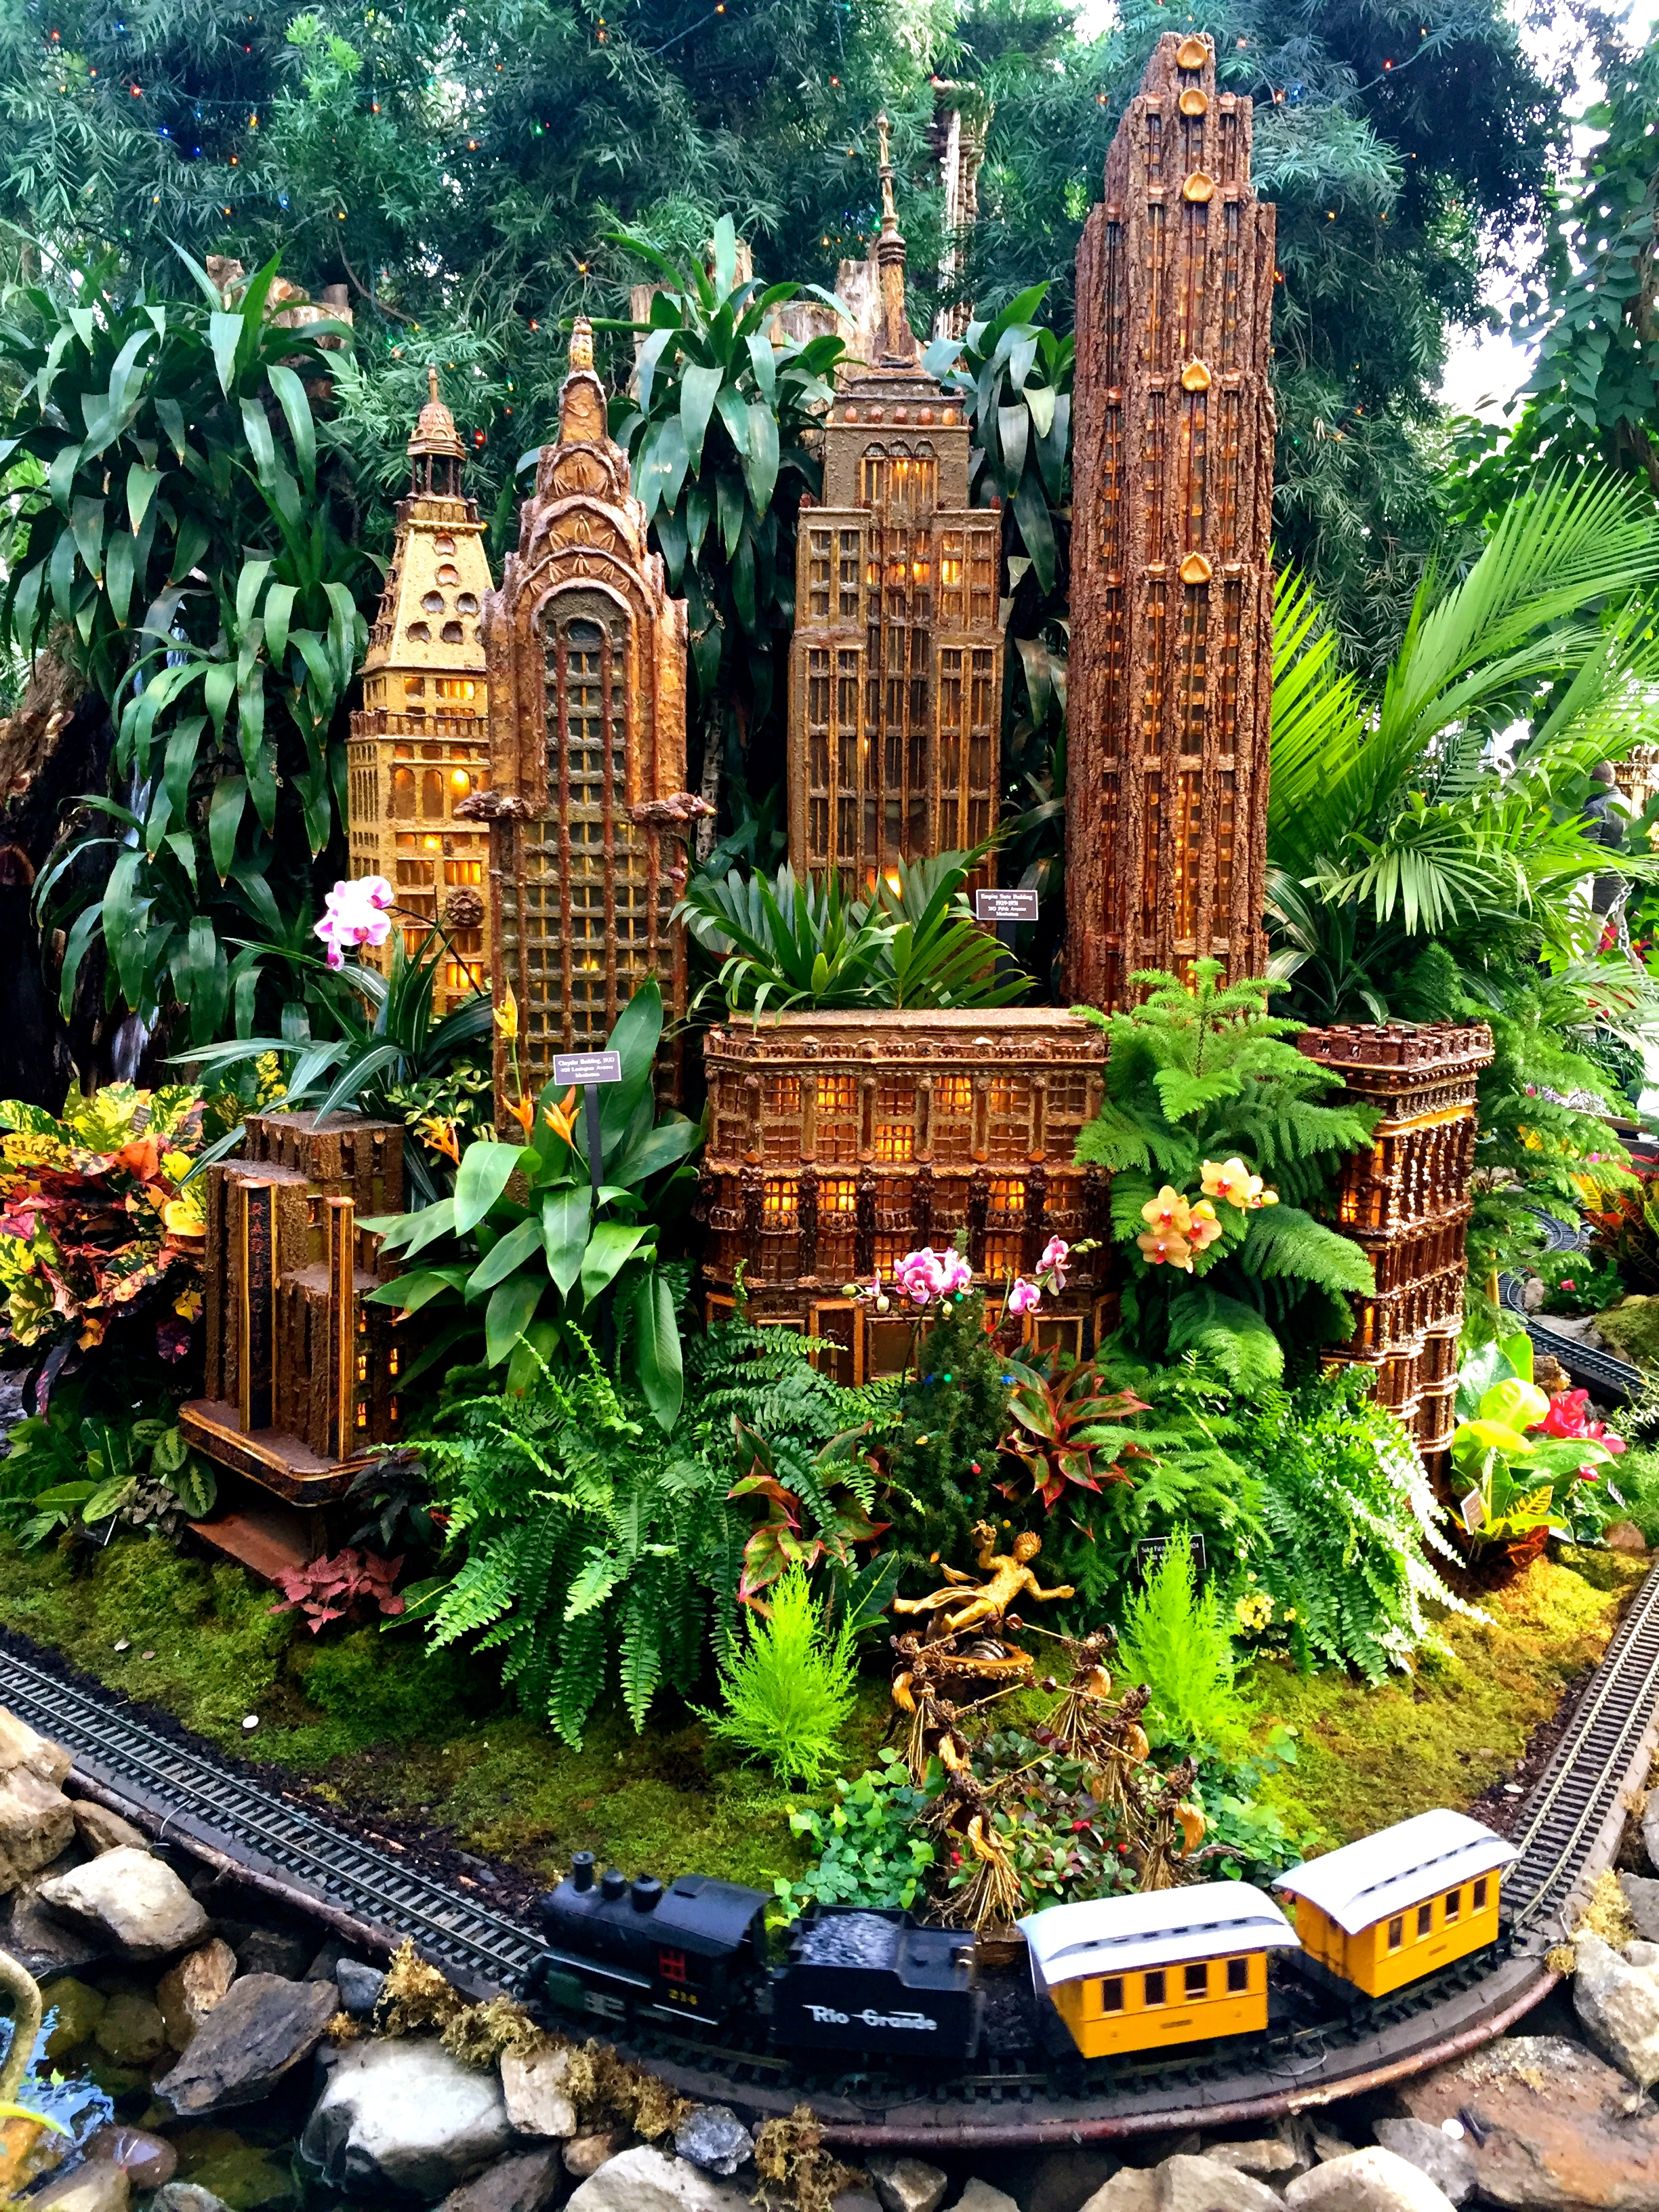 Guide To The Holiday Train Show At The New York Botanical